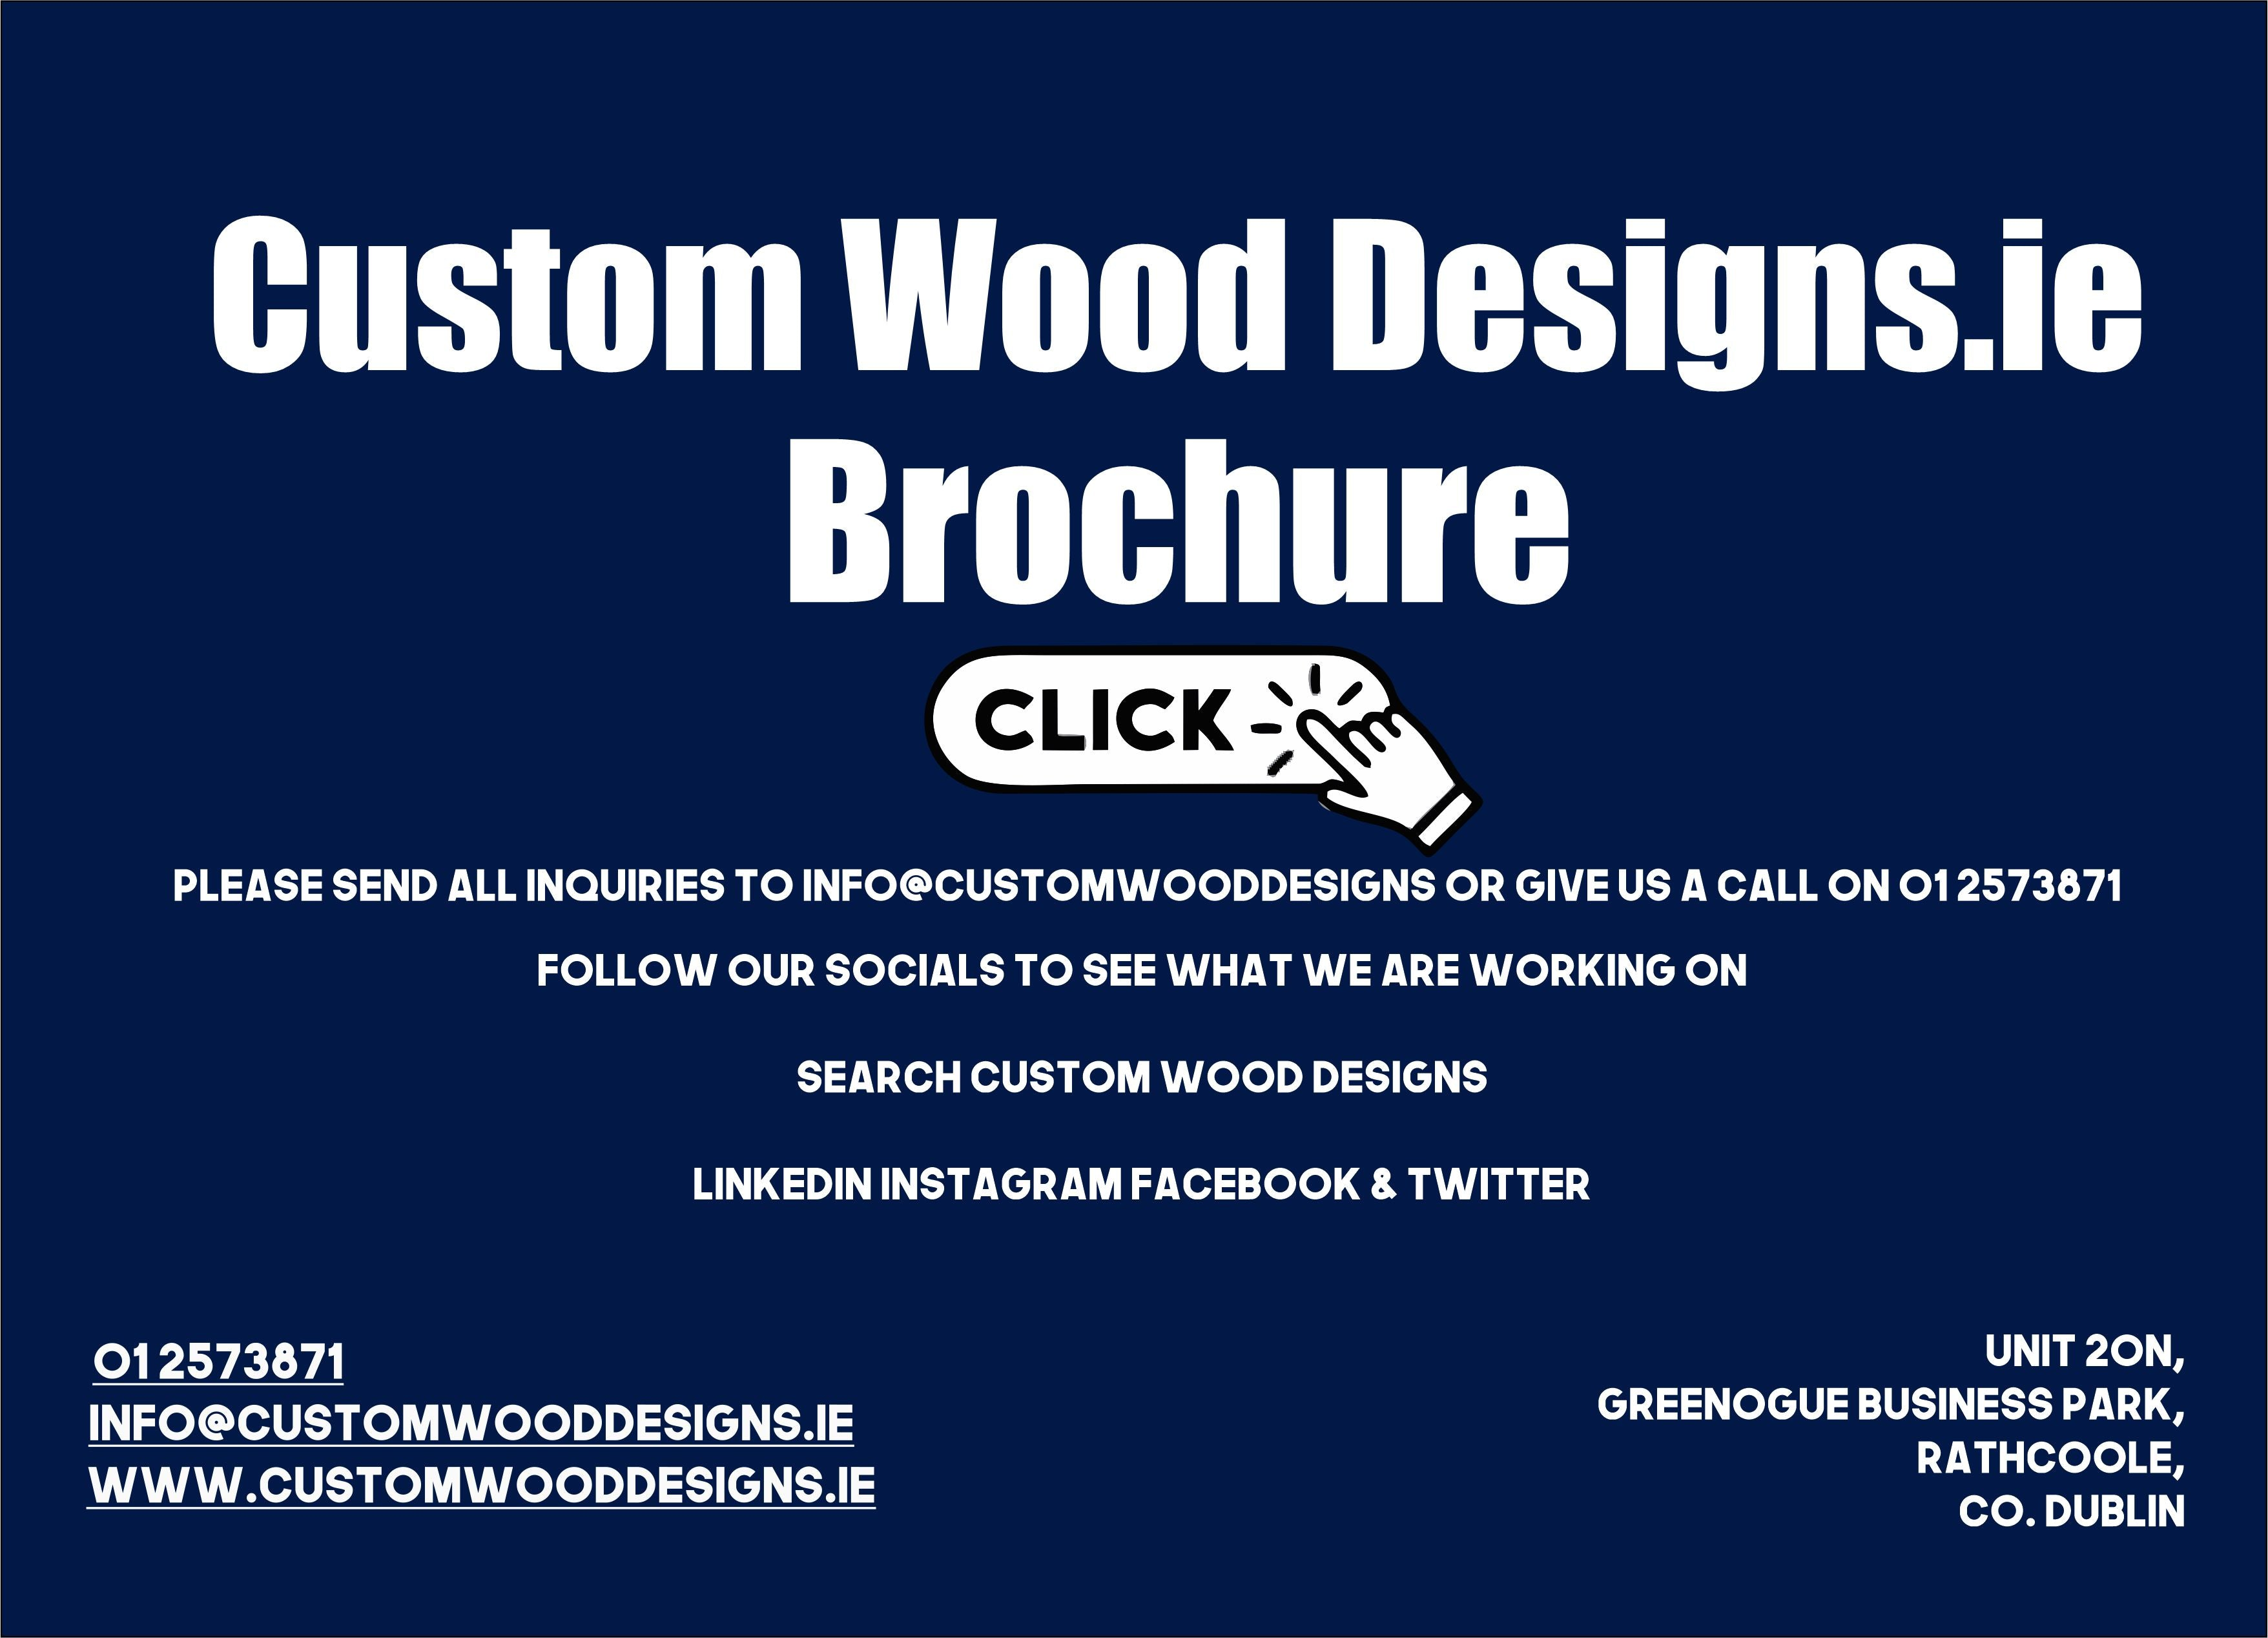 Custom Wood Designs Brochure 2021 Manufacturing branding and promotional